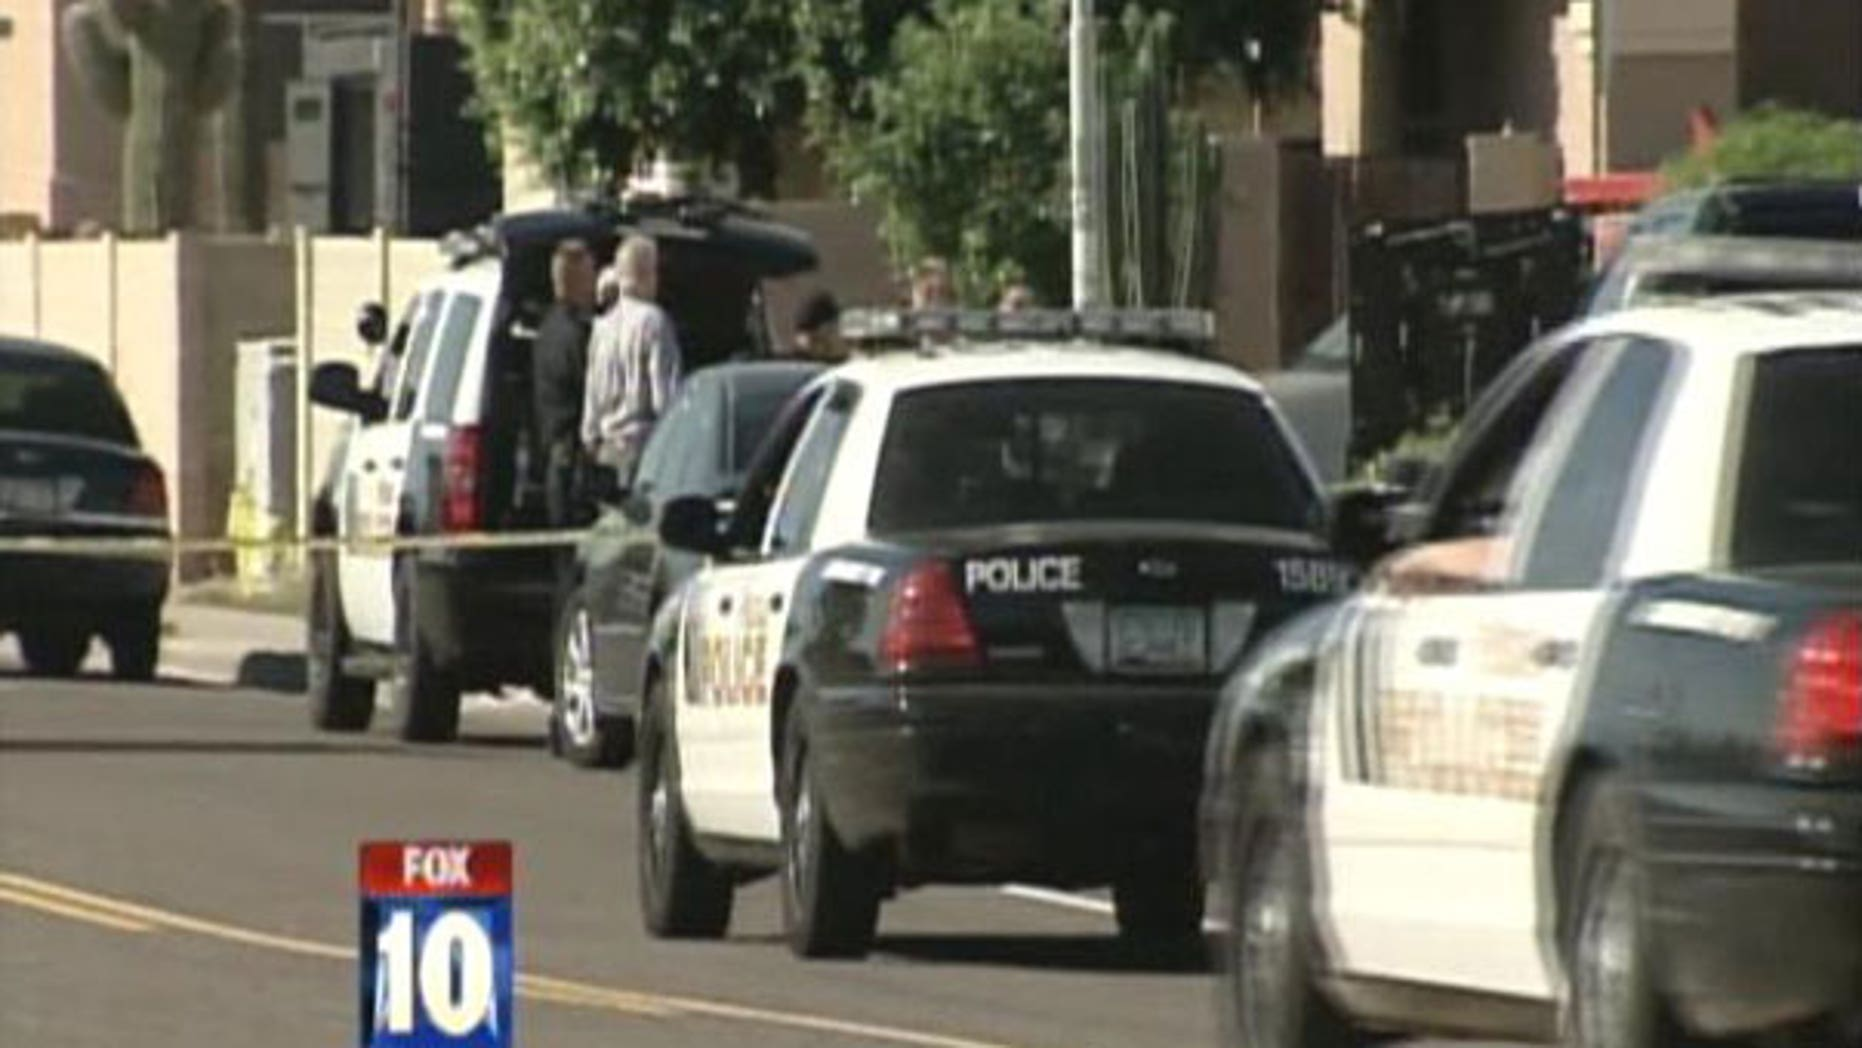 April 20: Police surround a house in Peoria, Arizona while searching for suspects in a reported home invasion.